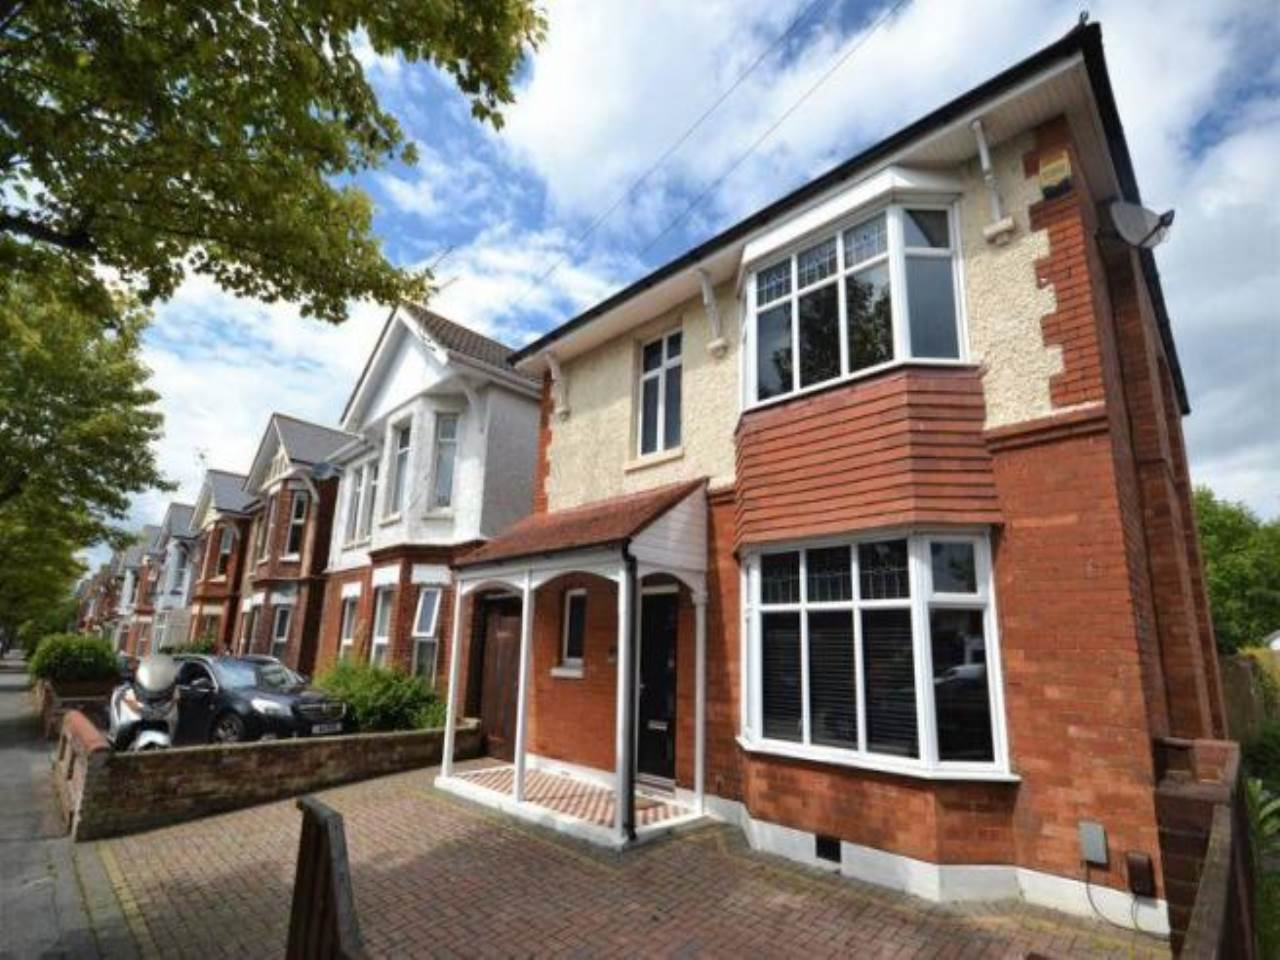 4 bed house for sale in Cowper Road, Moordown  - Property Image 19